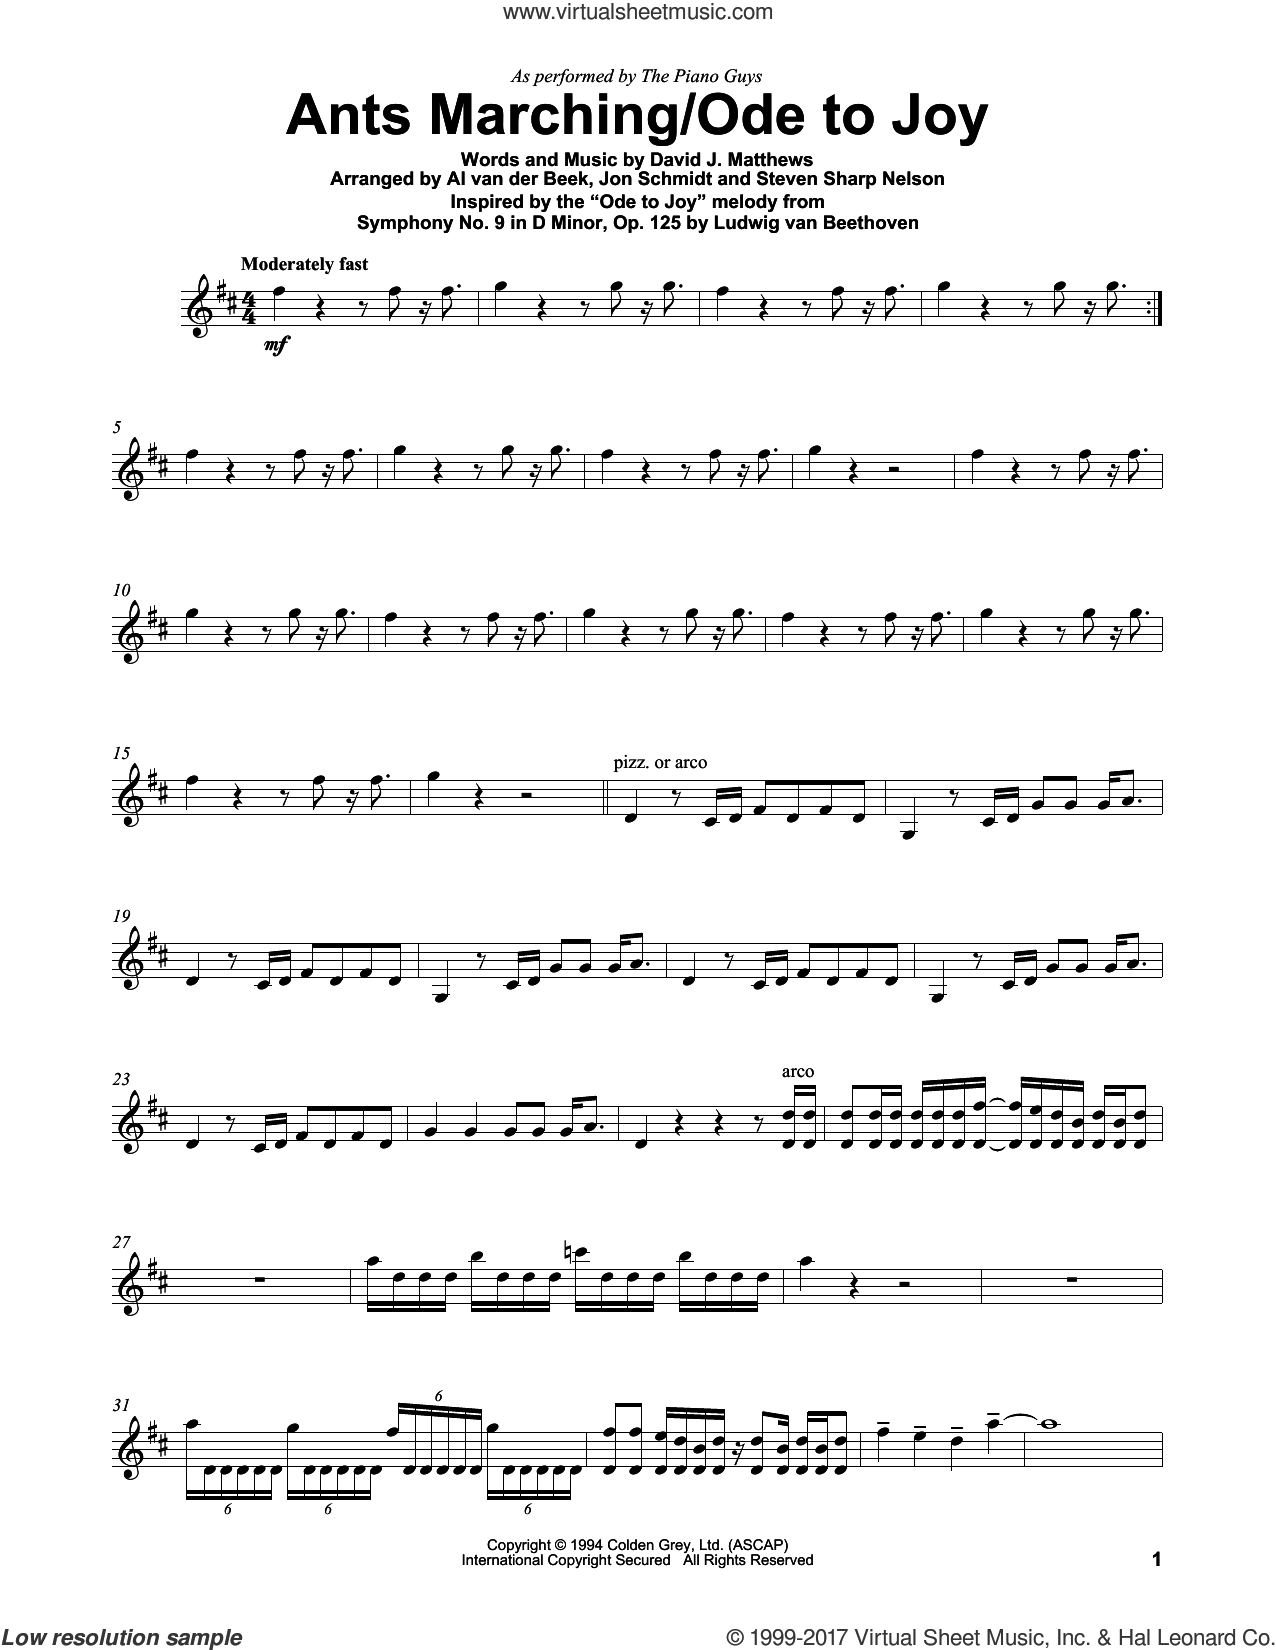 Ants Marching/Ode To Joy sheet music for violin solo by The Piano Guys, Dave Matthews Band and Ludwig van Beethoven, intermediate skill level